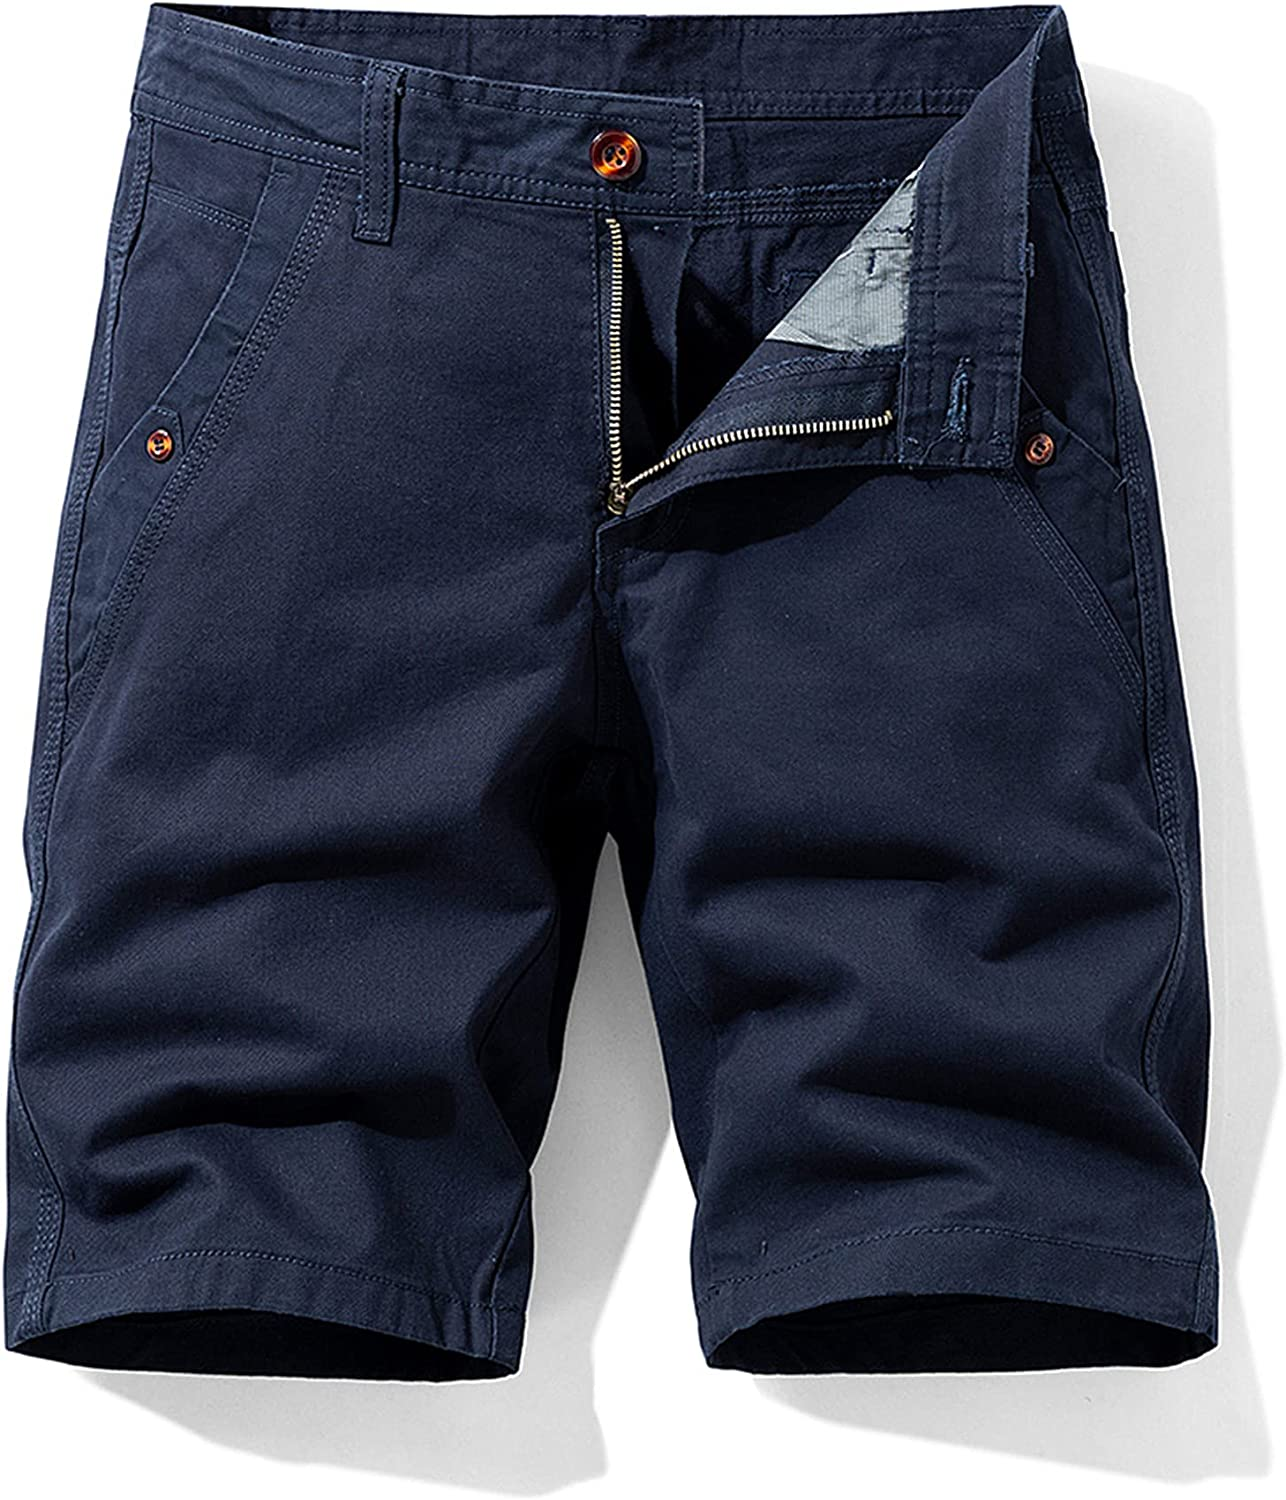 GAOZHEN Men's Cotton Twill Cargo Comfy Shorts,Outdoor Loose Solid Color Pants,Casual Gentleman,Blue,28